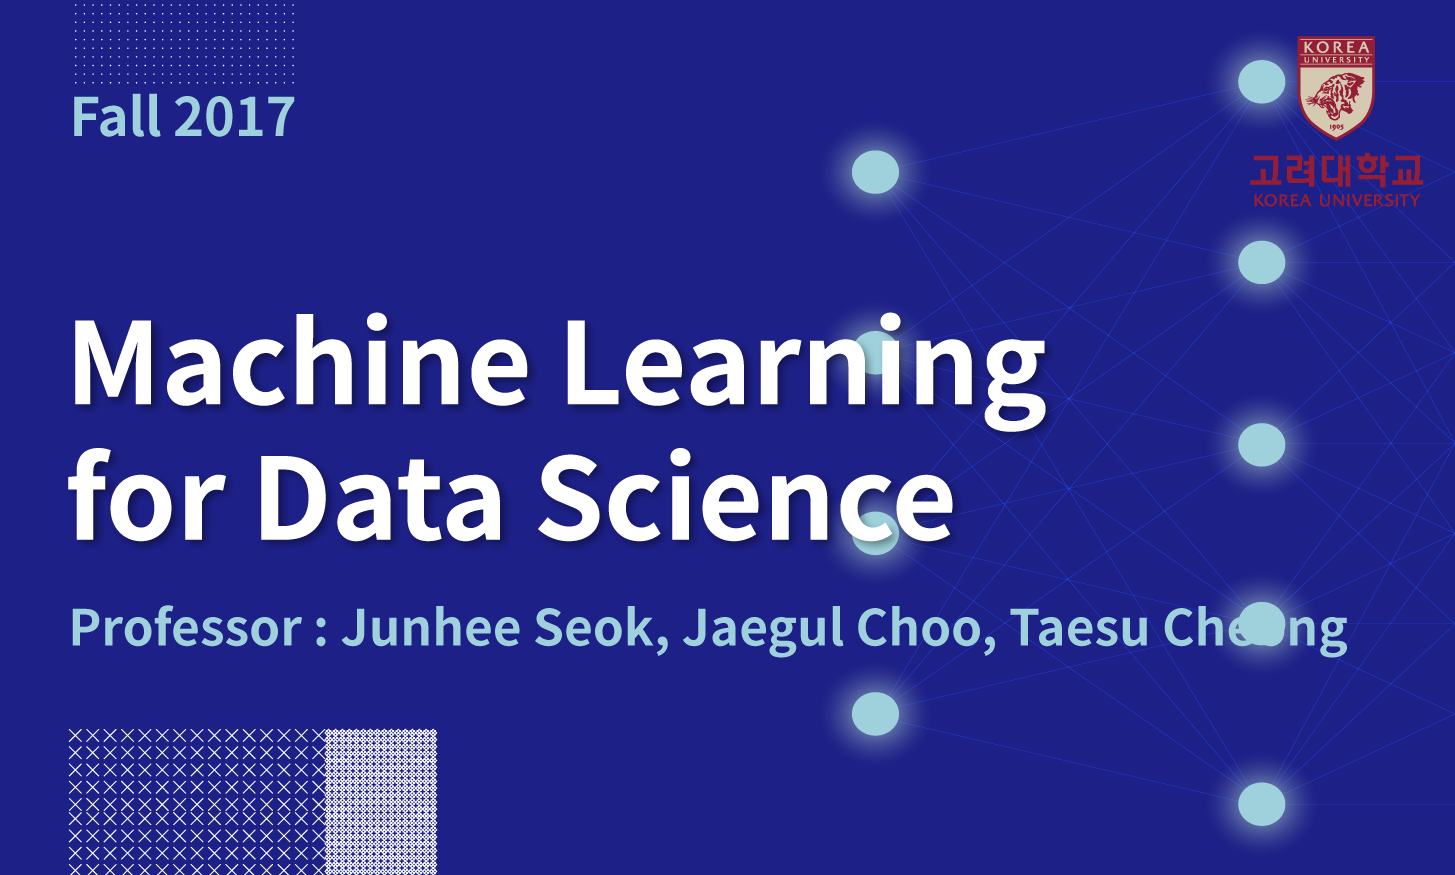 Machine Learning for Data Science 개강일 2017-10-17 종강일 2018-01-30 강좌상태 end